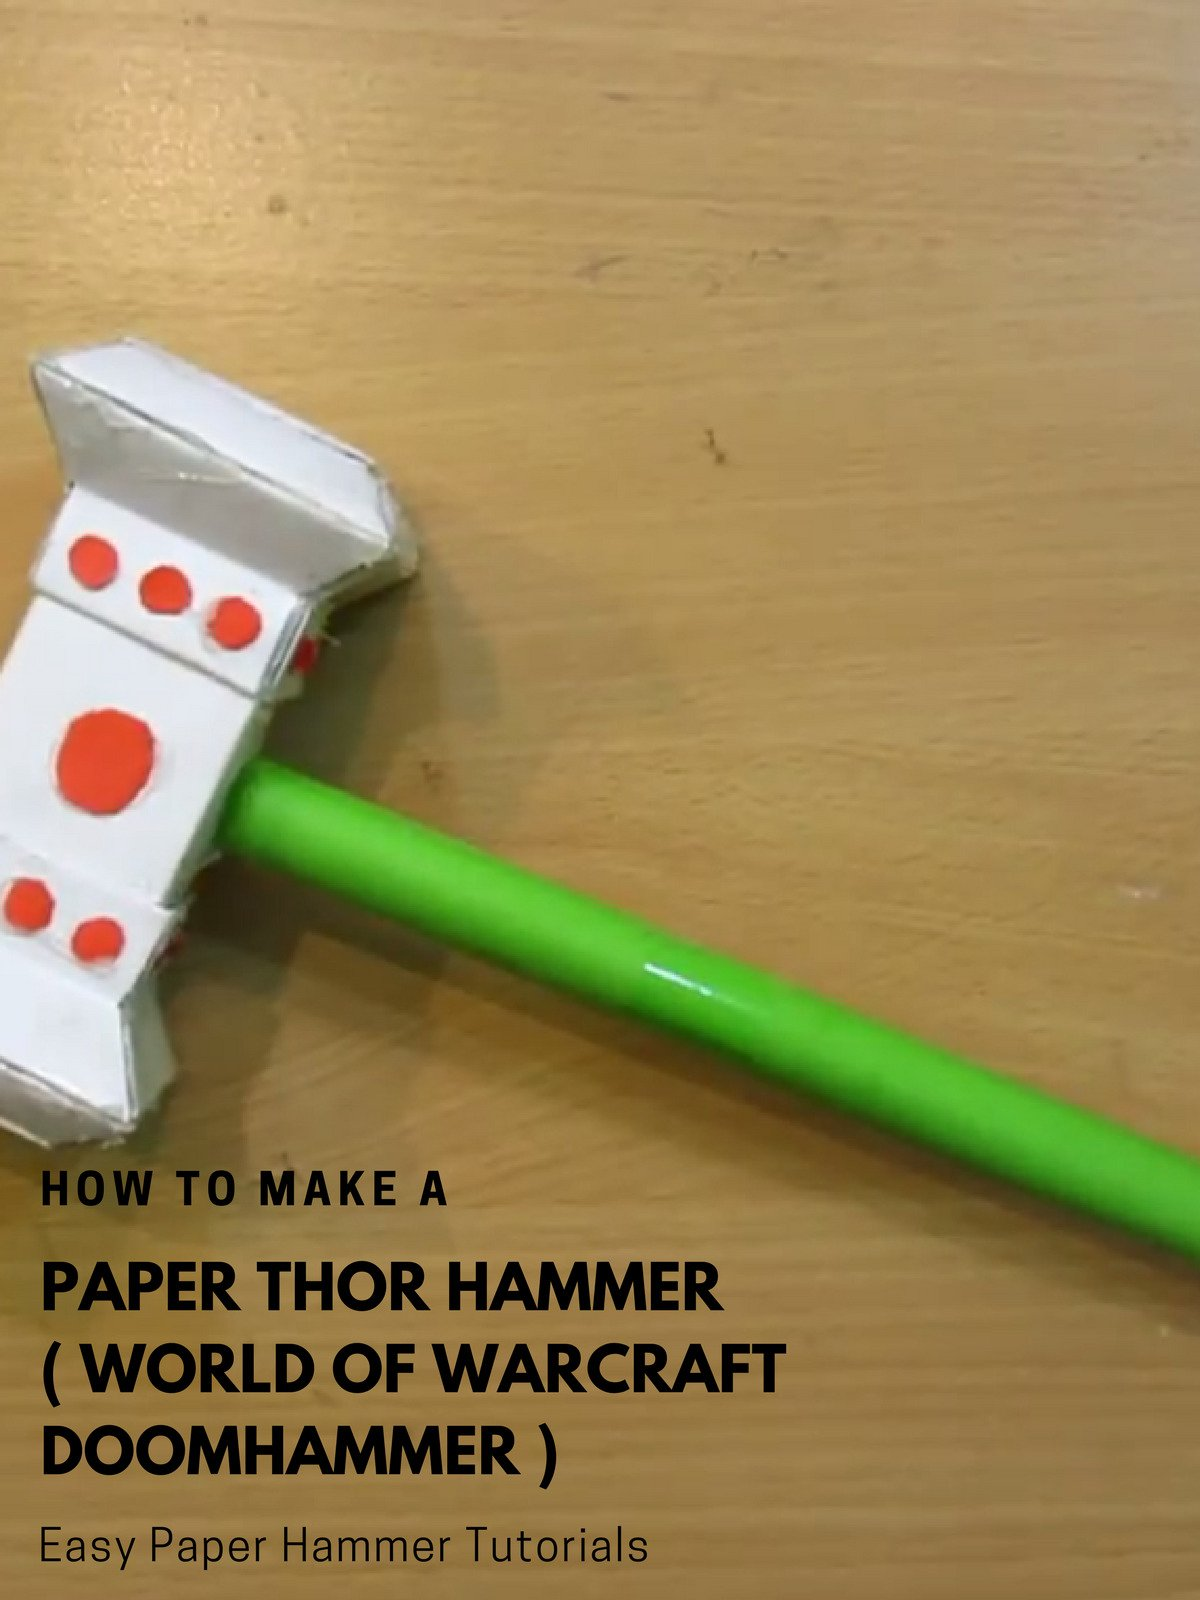 How to Make a Paper Thor Hammer ( World of Warcraft Doomhammer ) on Amazon Prime Video UK